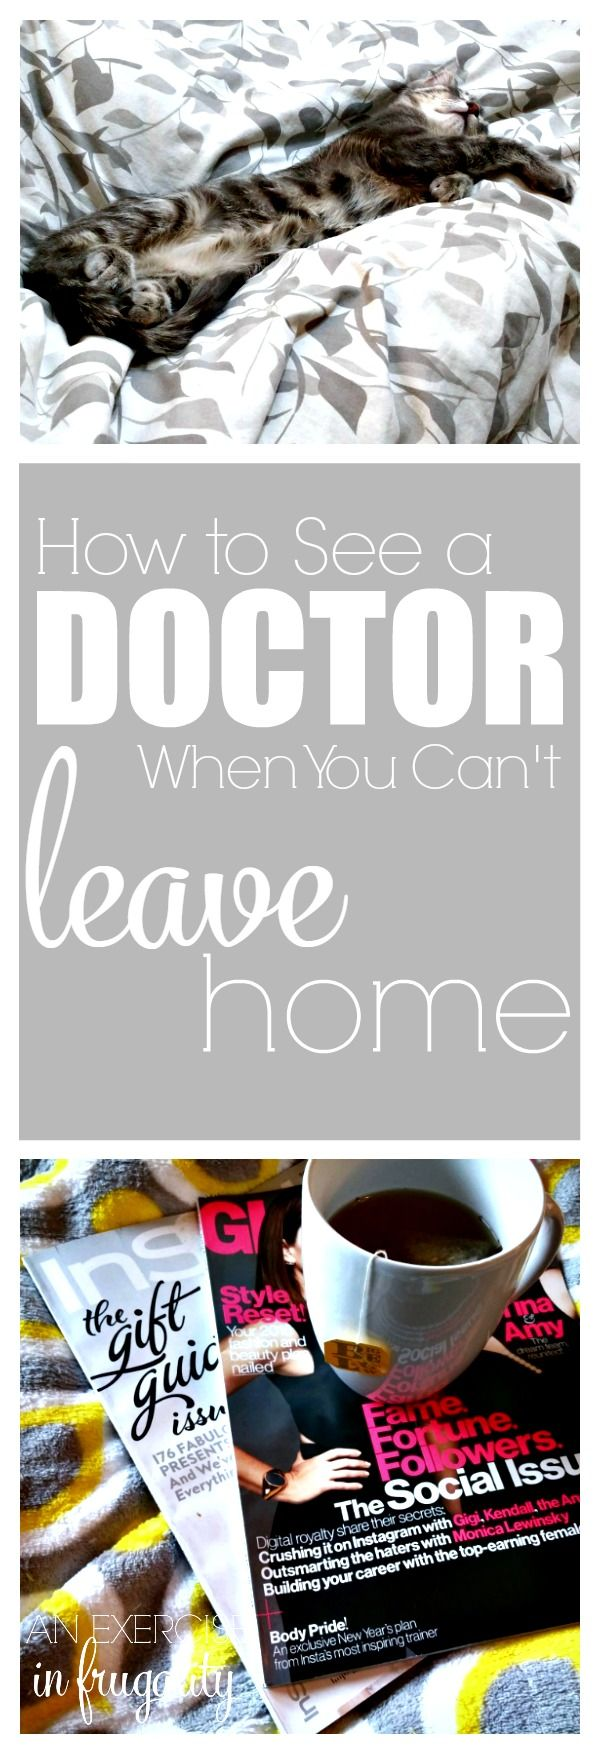 How to See a Doctor When you can't Leave Home- If you or your kid is sick, and you don't want to sit in a waiting room full of flu germs, an online doctor visit might just be your saving grace! I'm sharing the story today of when my kitten clawed me in the eye and I saw a doctor without leaving home, and it was so easy. Save this pin for when you are sick or injured and use the coupon code in the blog post for 25% off your first visit with Amwell! #ad #health #wellness #momhacks